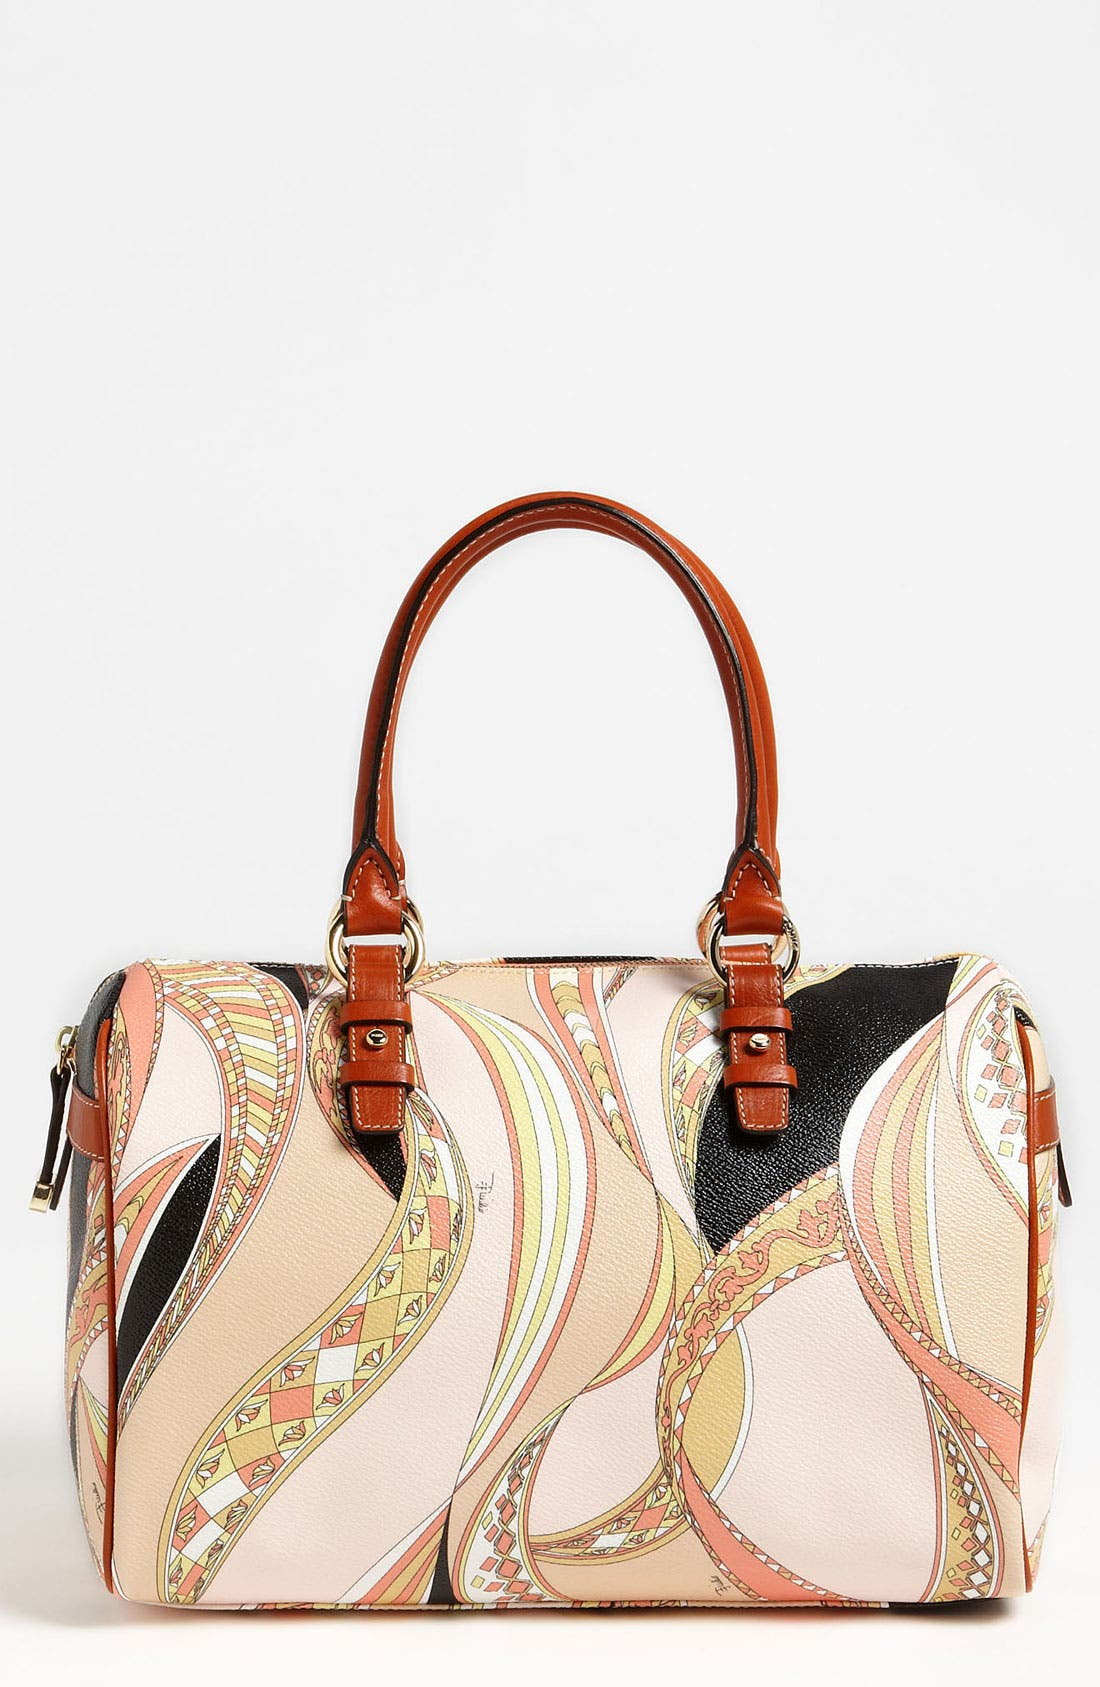 Main Image - Emilio Pucci 'Large' Boston Bag